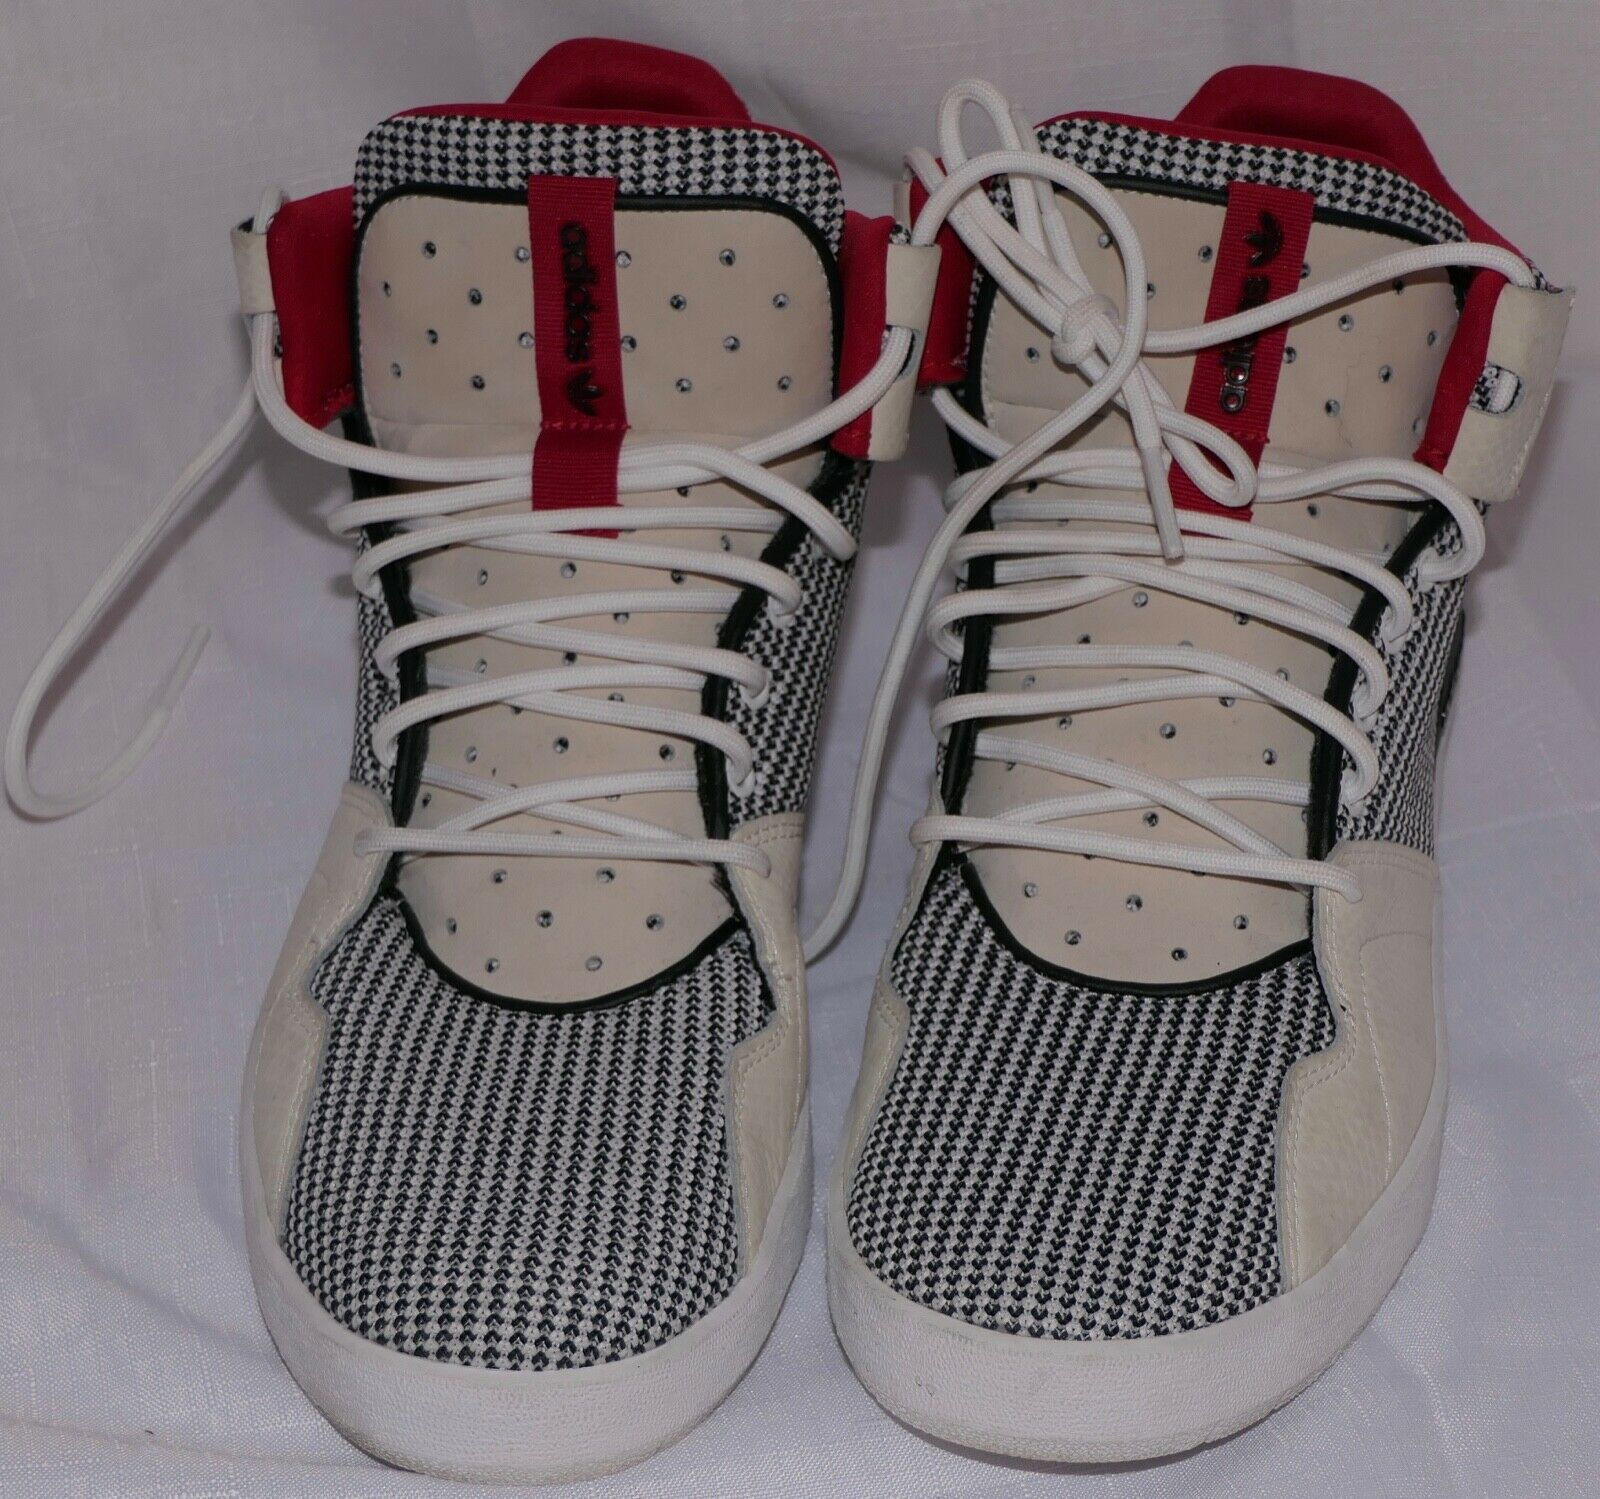 ADIDAS CRESTWOOD MENS MID TOP BASKETBALL CHECKERED RED WHITE BLACK SIZE US